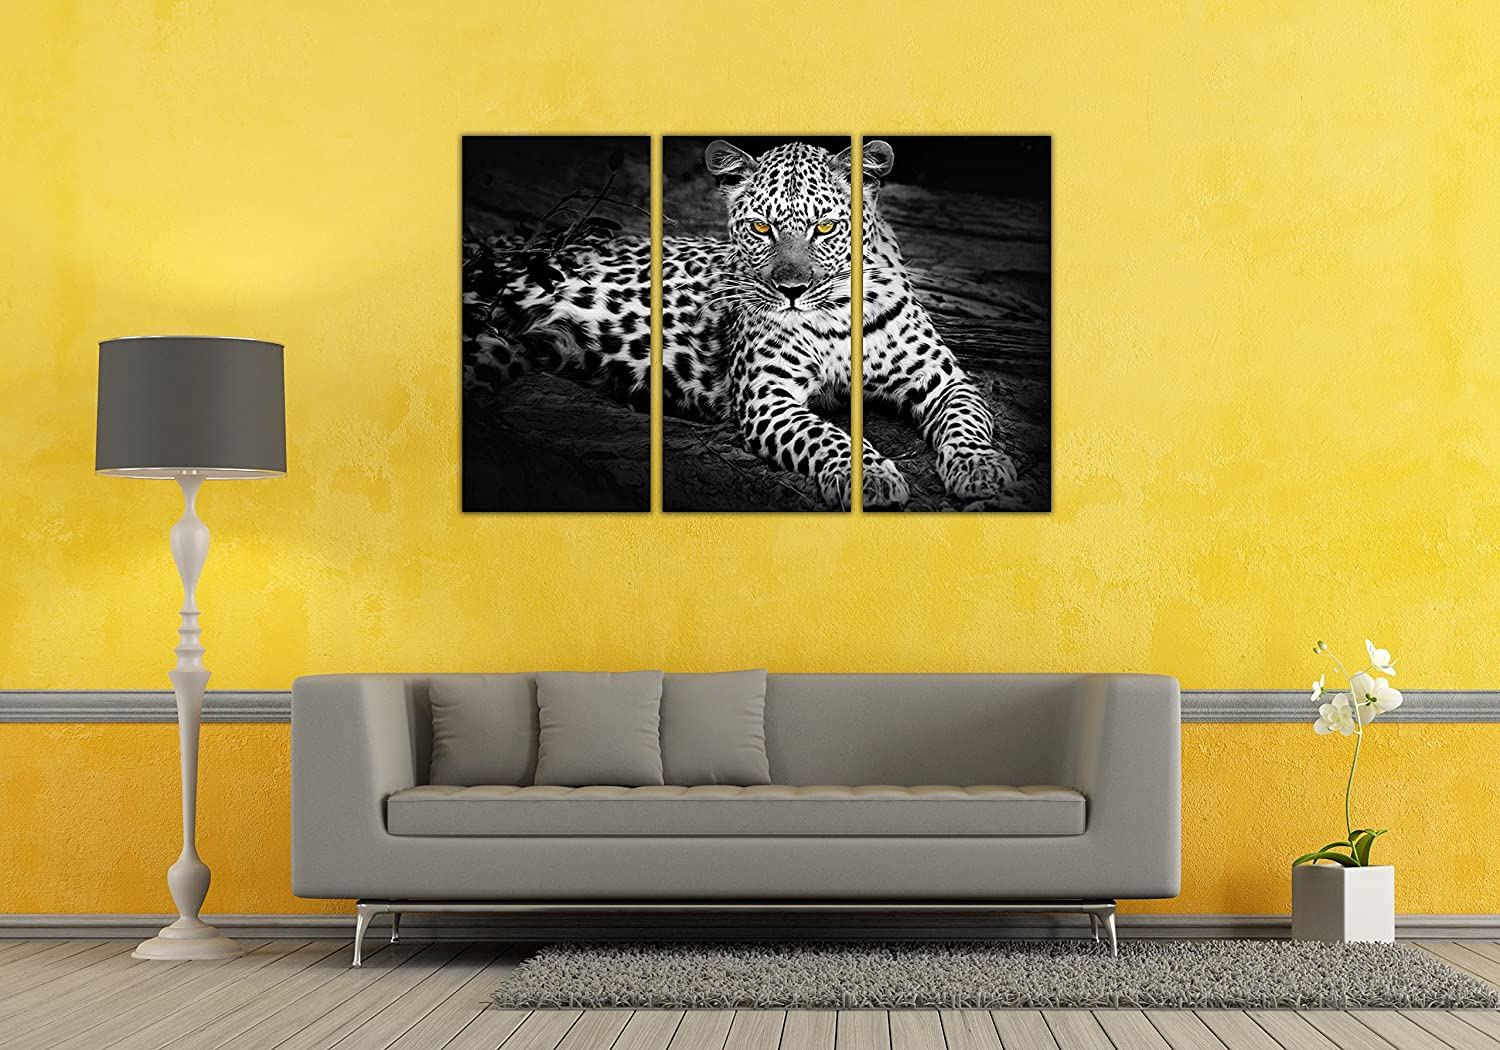 Amazon.com: 3 Panel Black and White Leopard/Cheetah Wall art ...